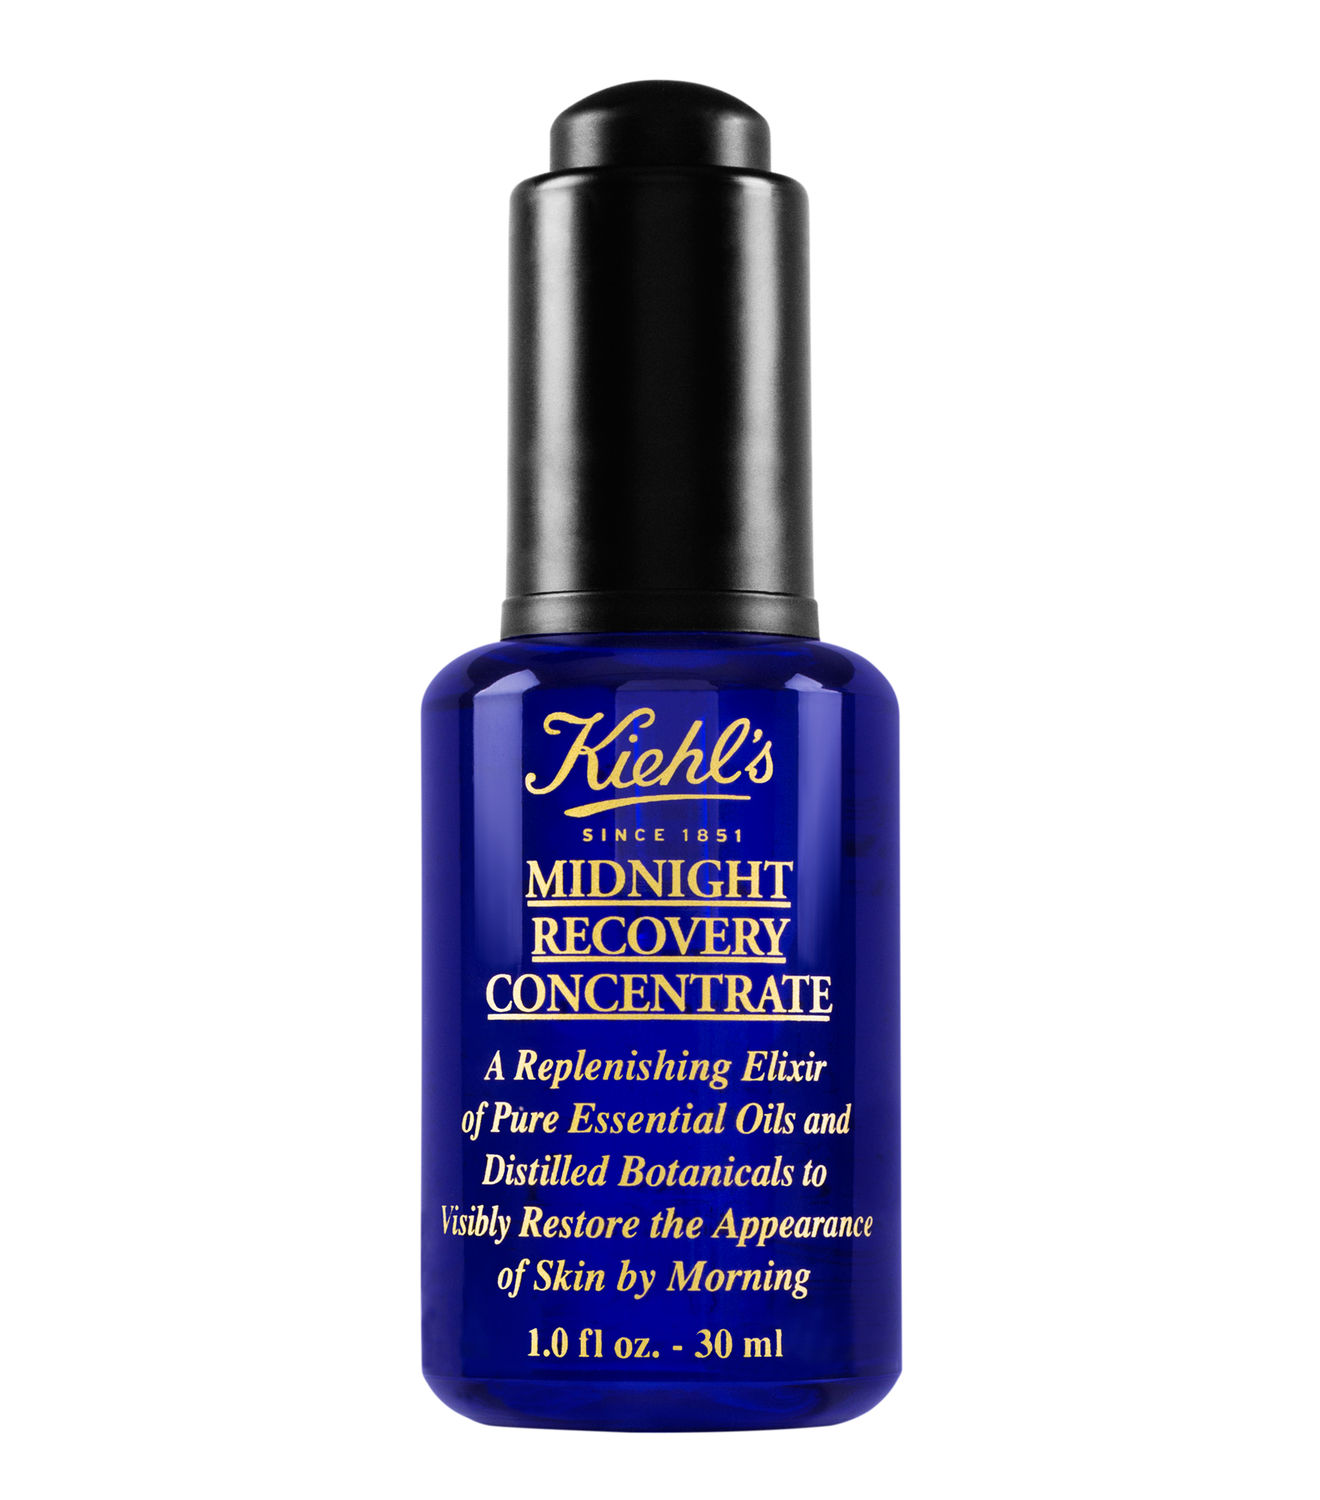 Midnight_Recovery_Concentrate_3605975053920_1.0fl.oz..jpg